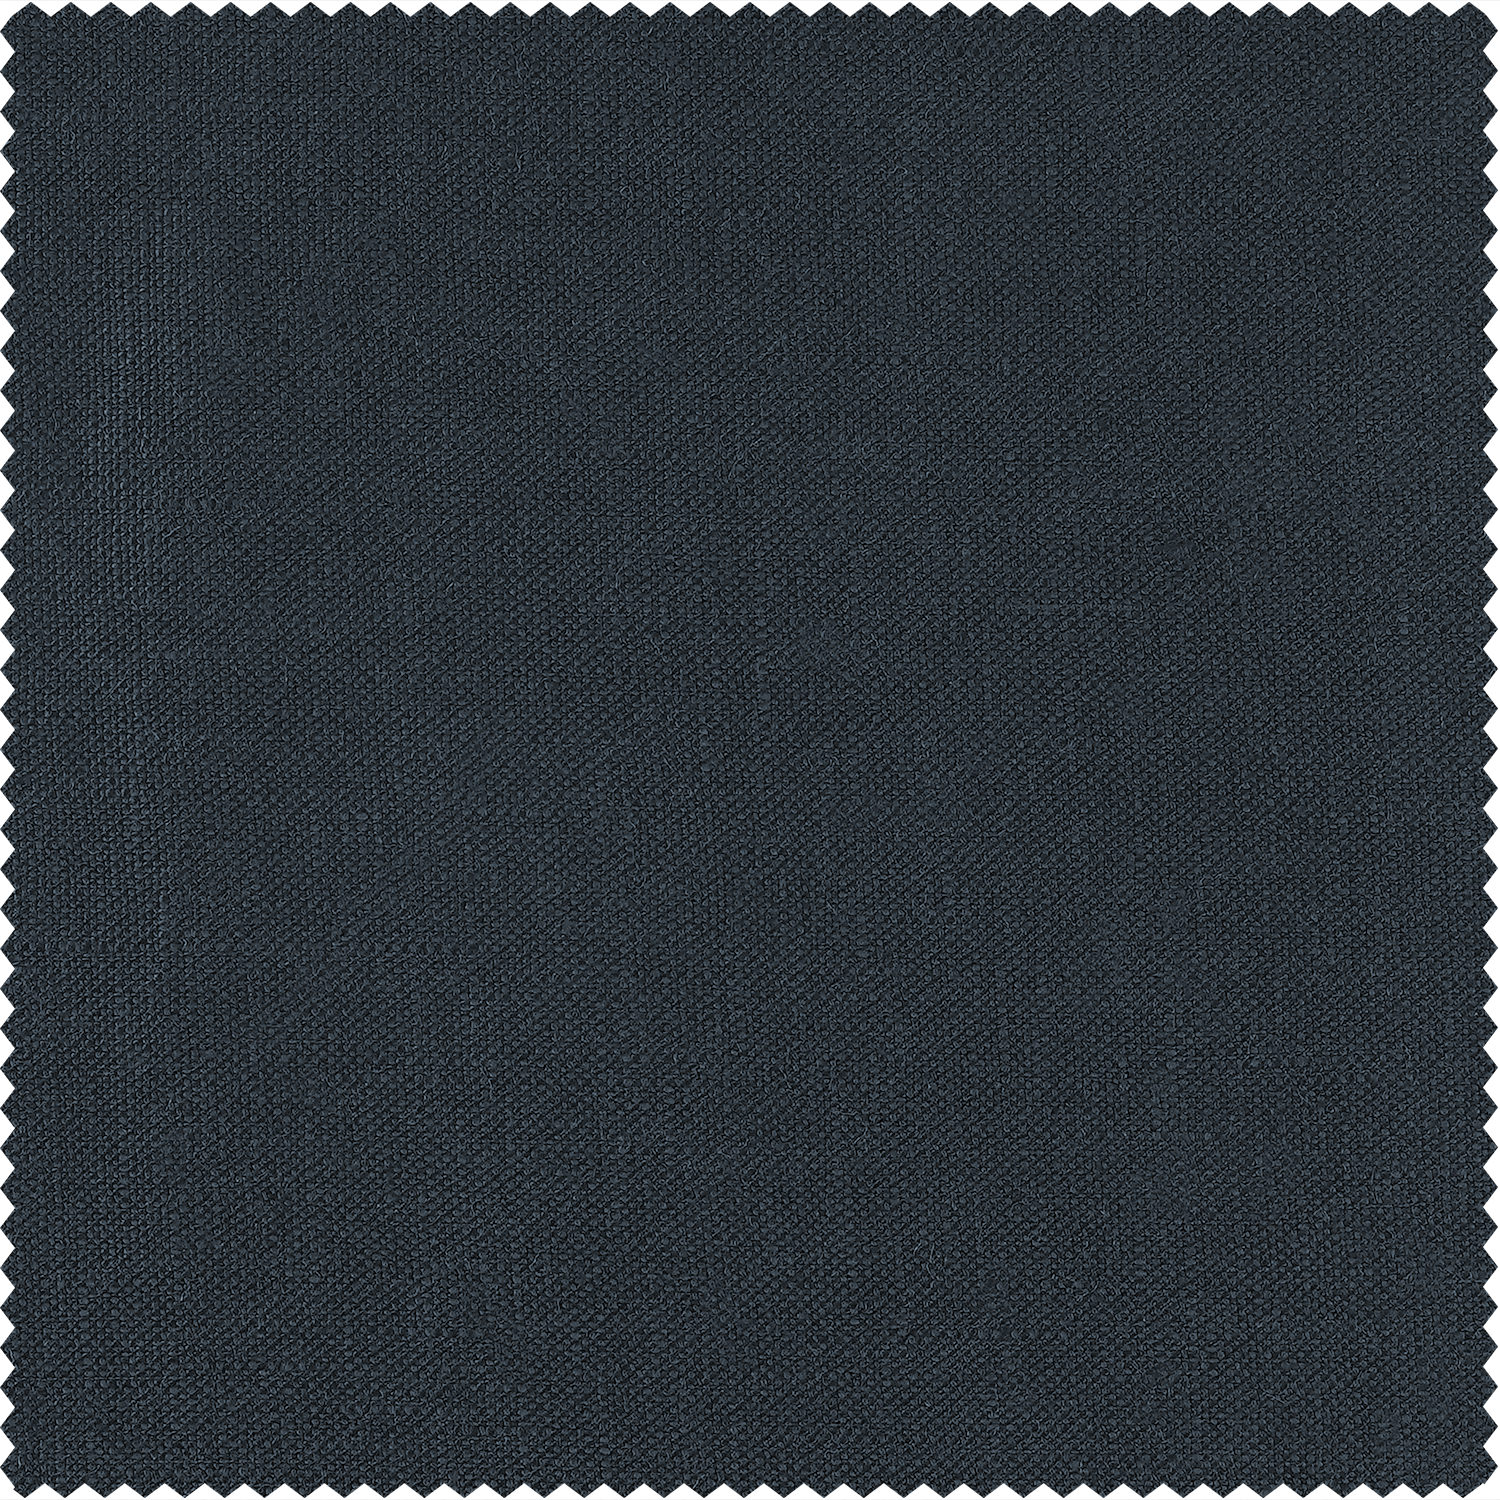 Native Navy French Linen Swatch